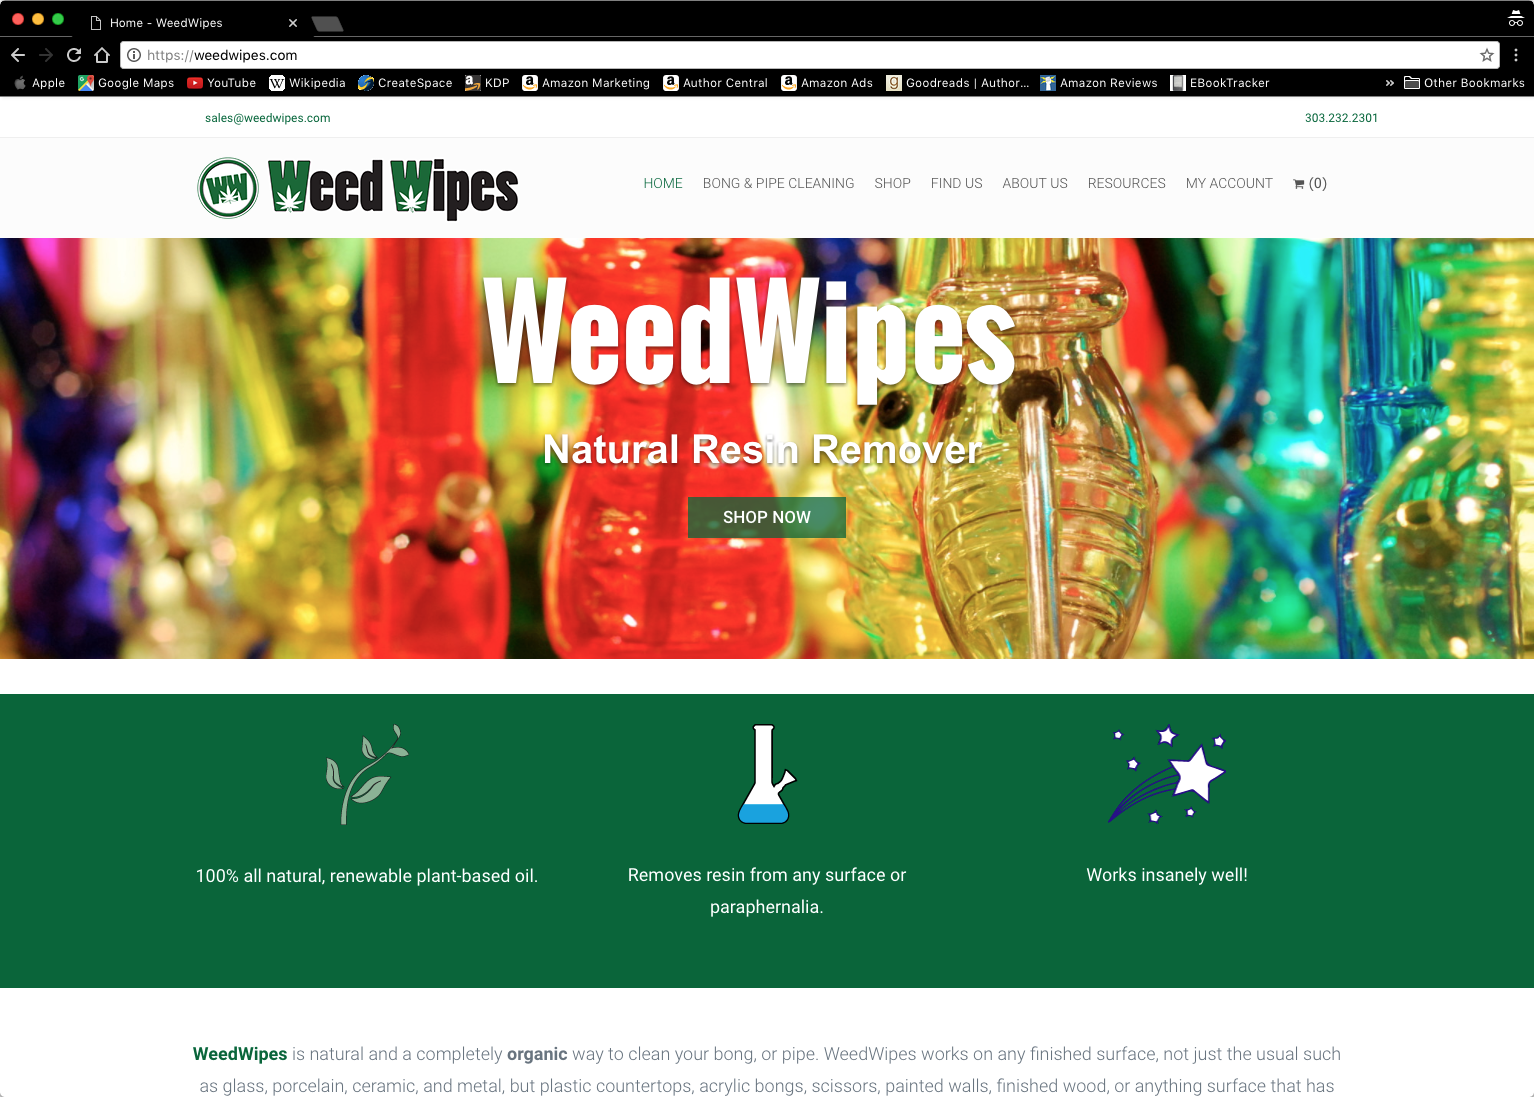 Spider Trainers' gallery: weedwipes.com (image)